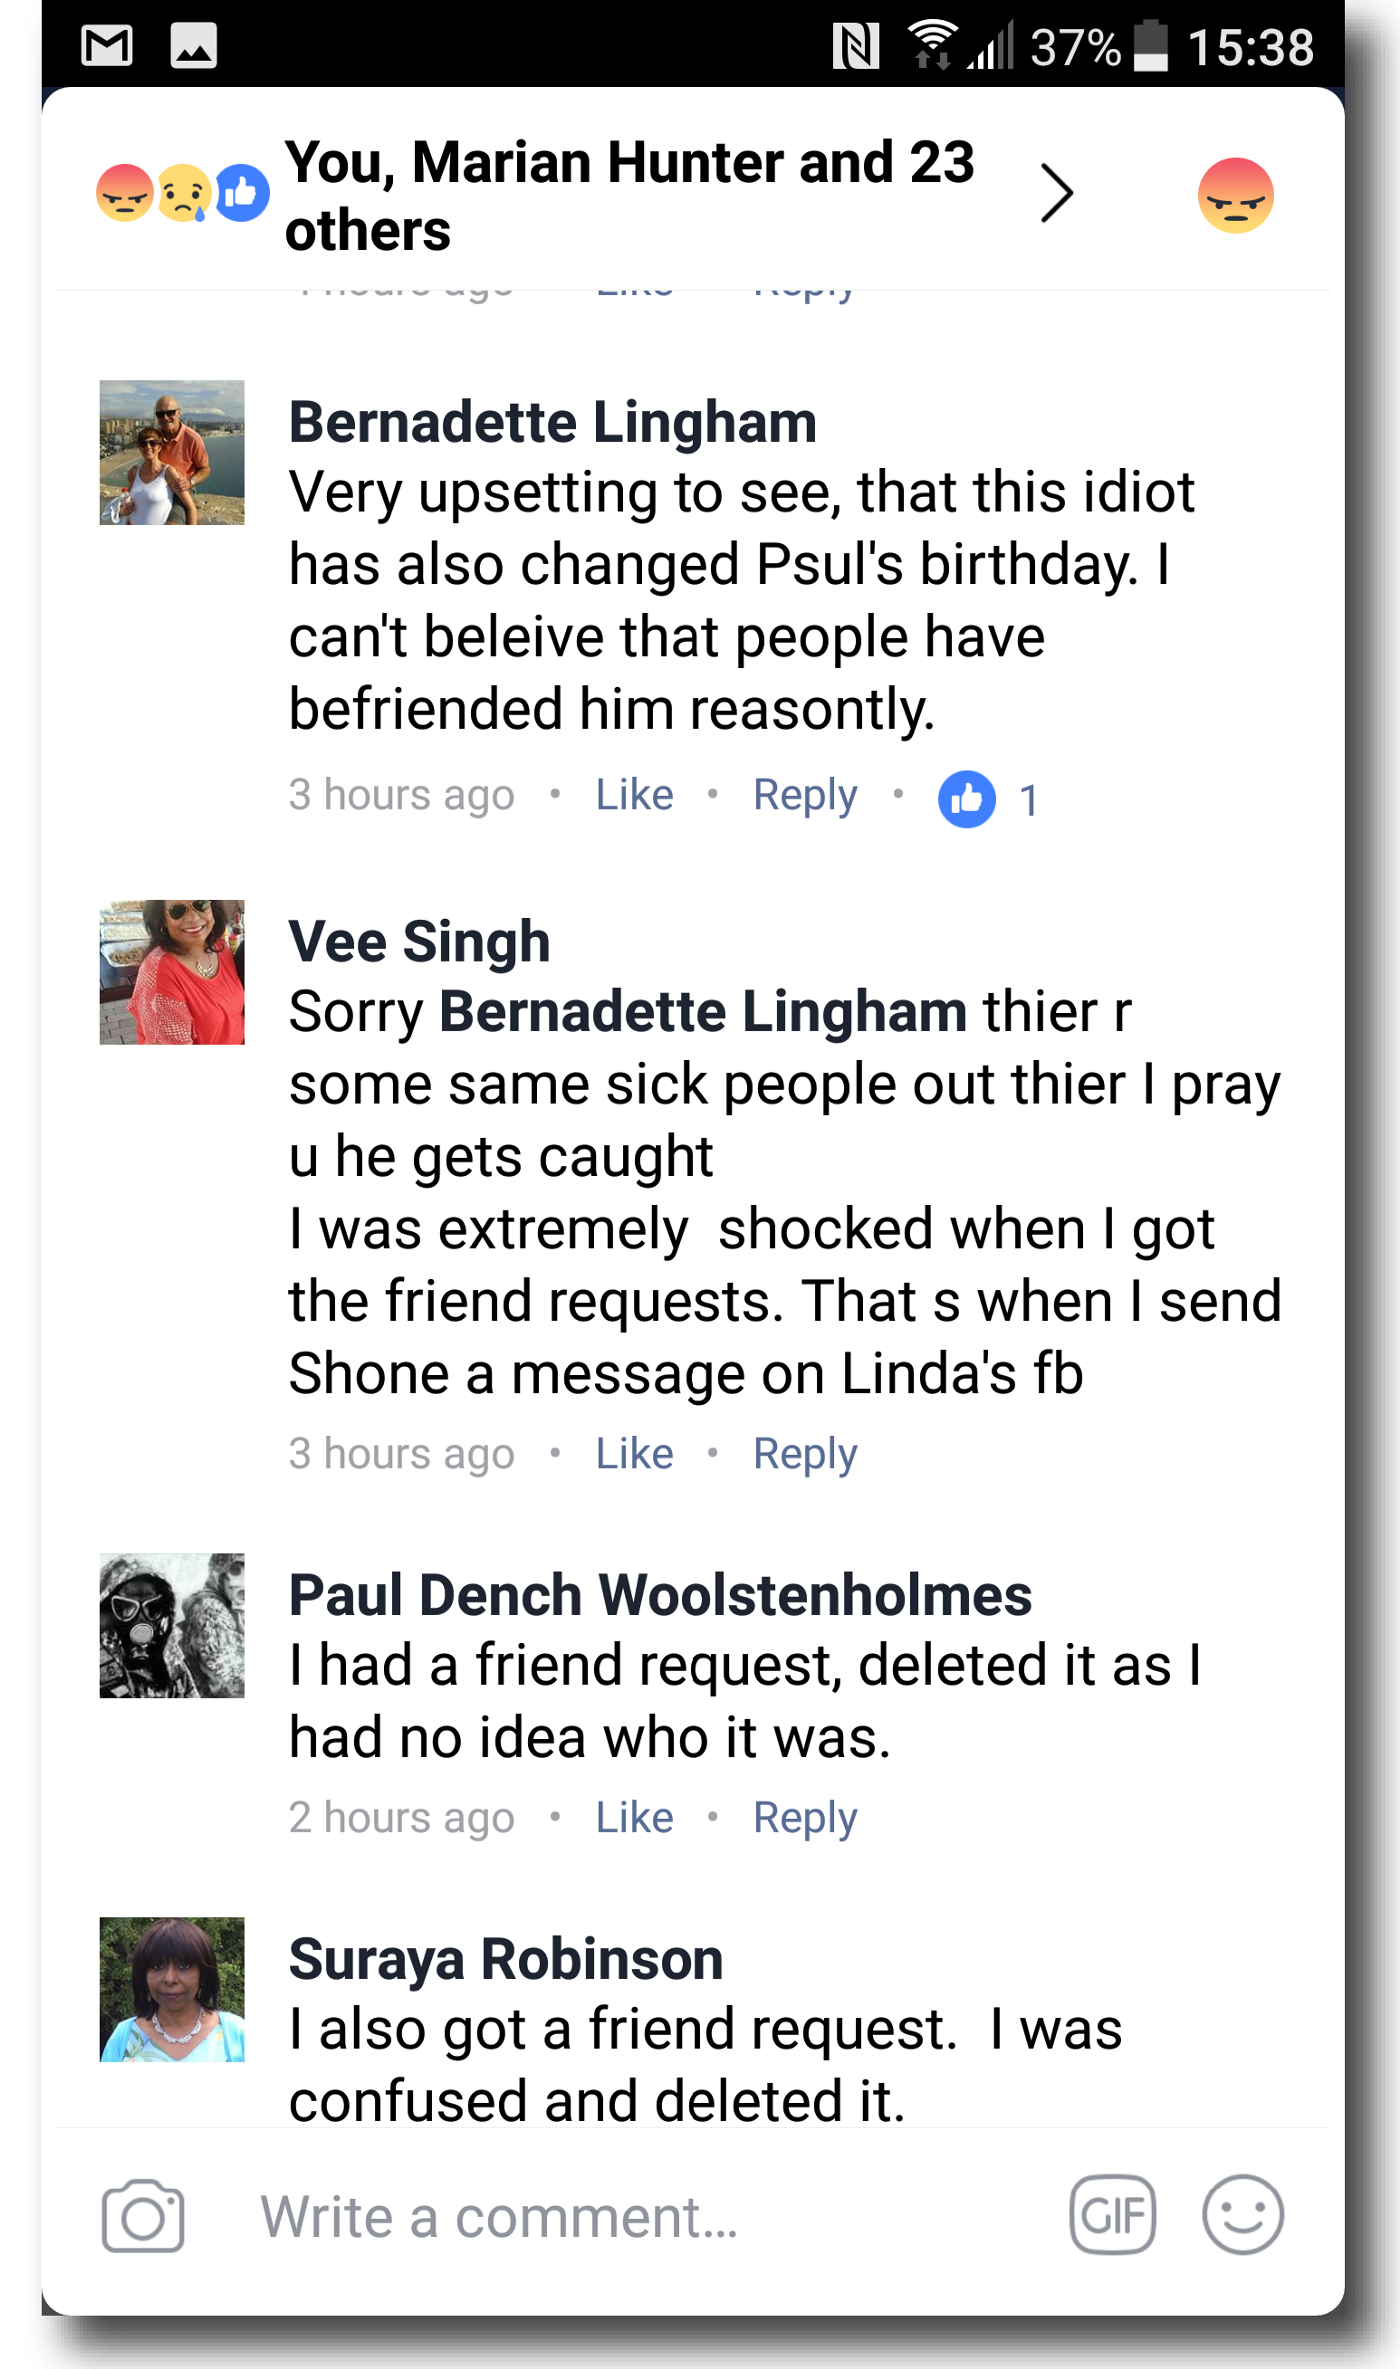 The hijacking of Paul Lingham's Facebook account - Erin Gallagher